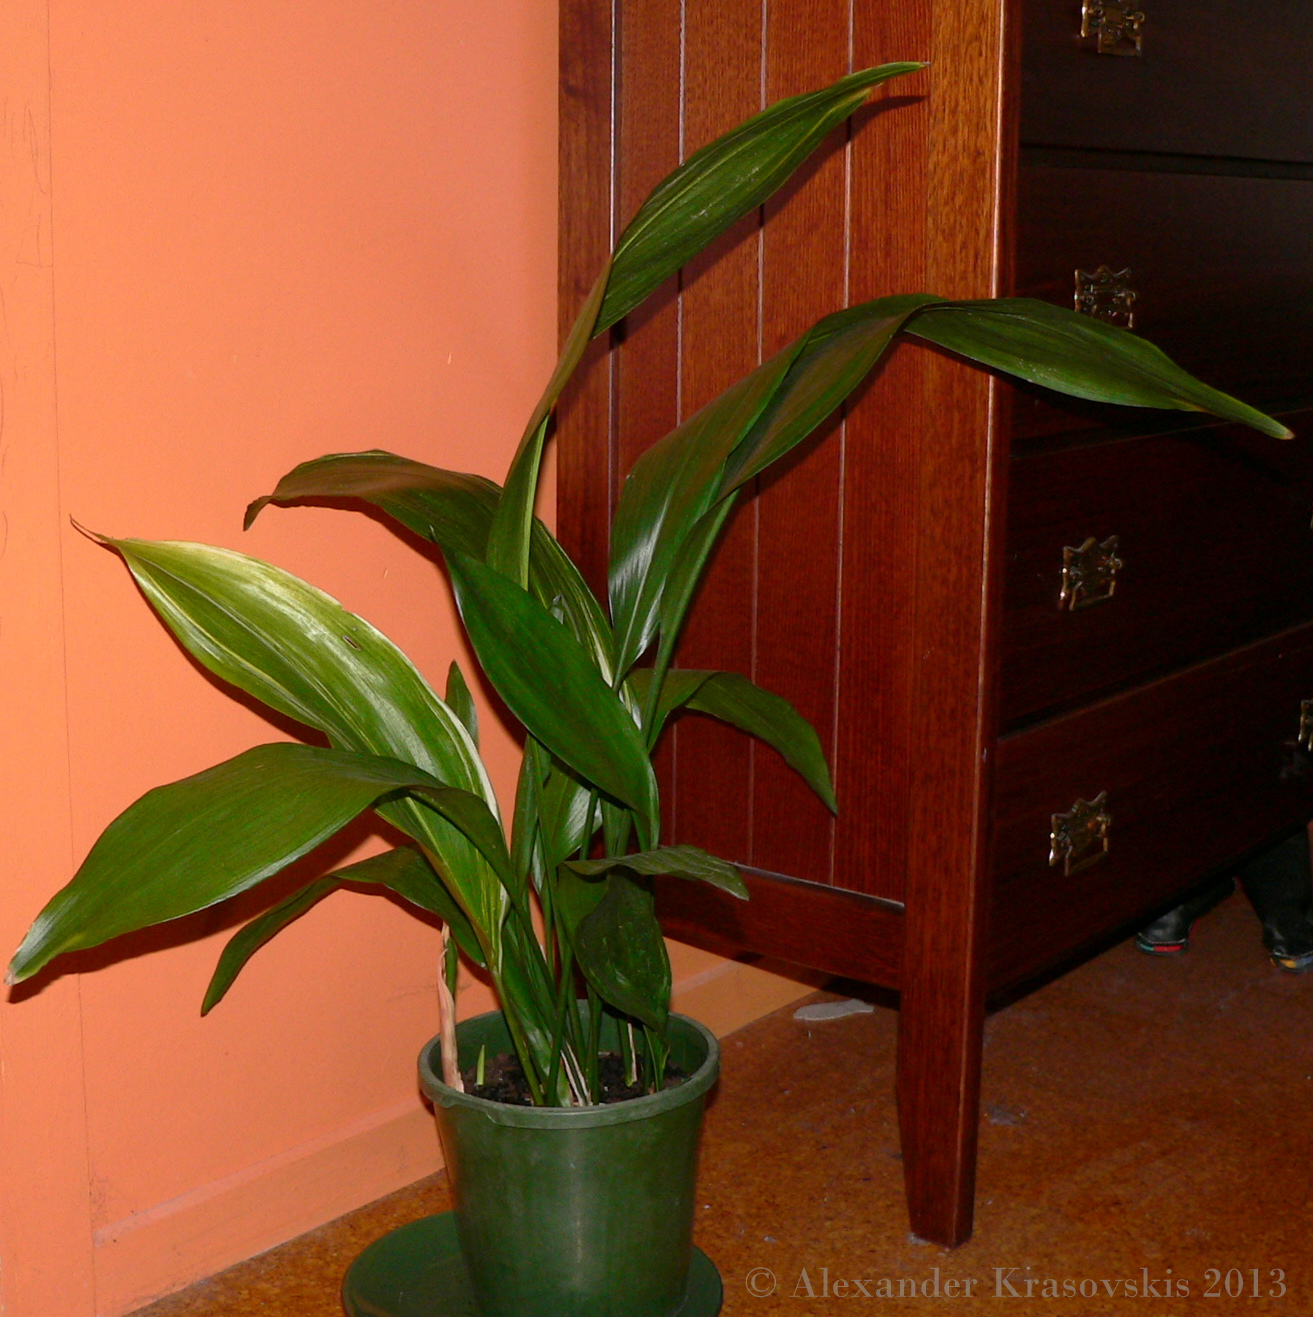 aggregata plants gardens classic common house plant